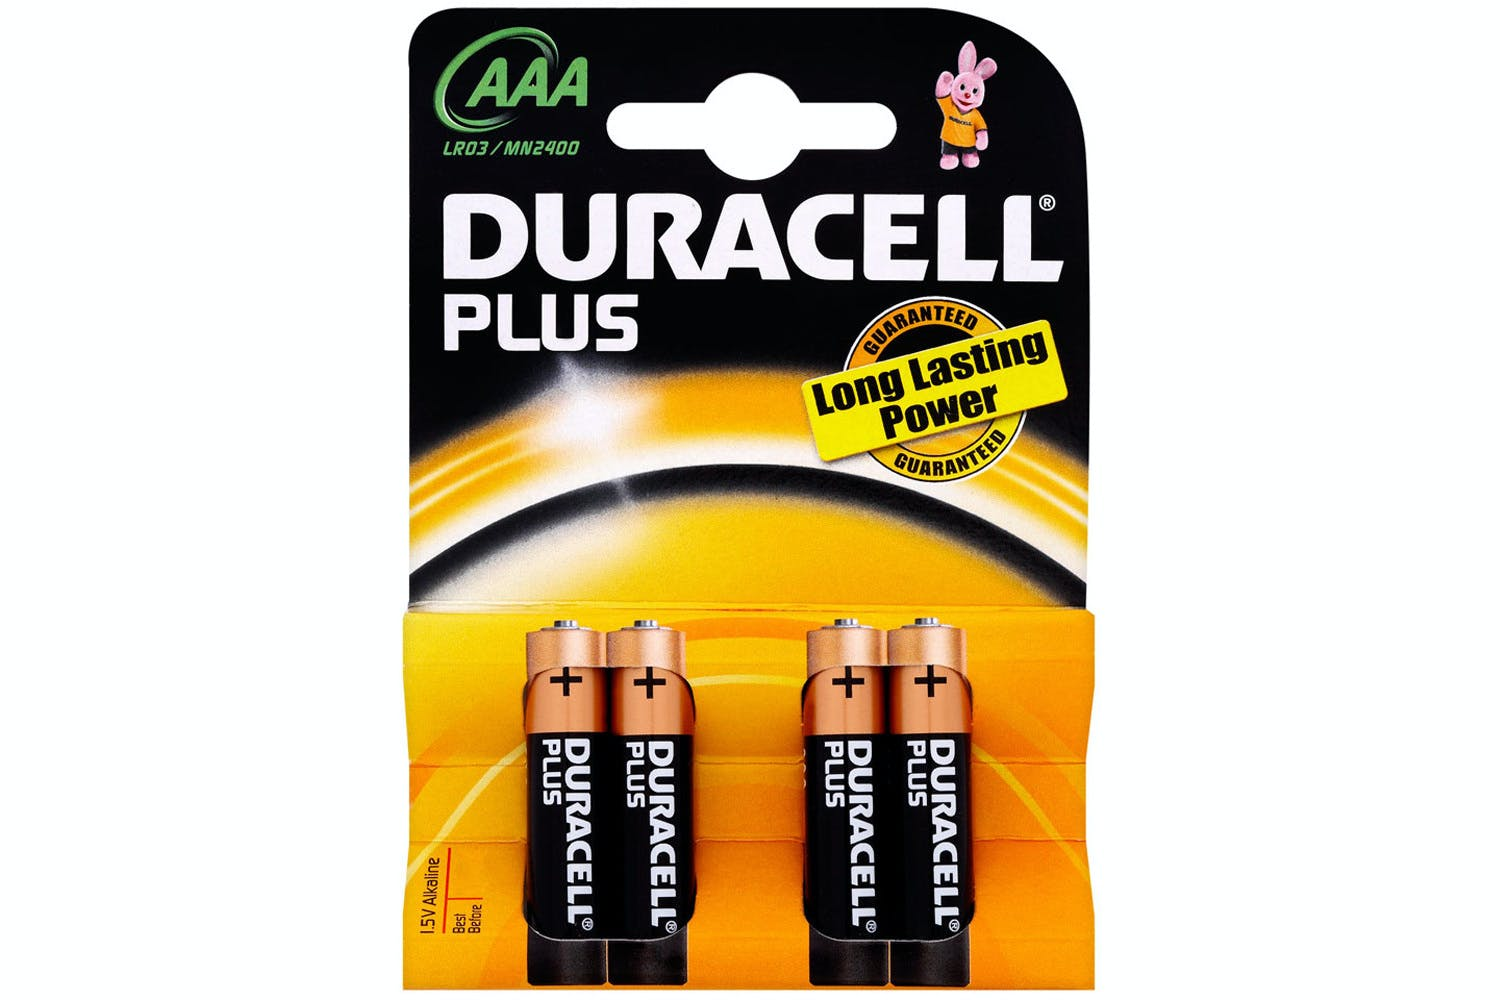 elements of marketing mix of duracell batteries Product: duracell batteries (ultra m3 and duracell plus ) duracell marketing, promotion 1 product: duracell batteries (ultra m3 and duracell plus.